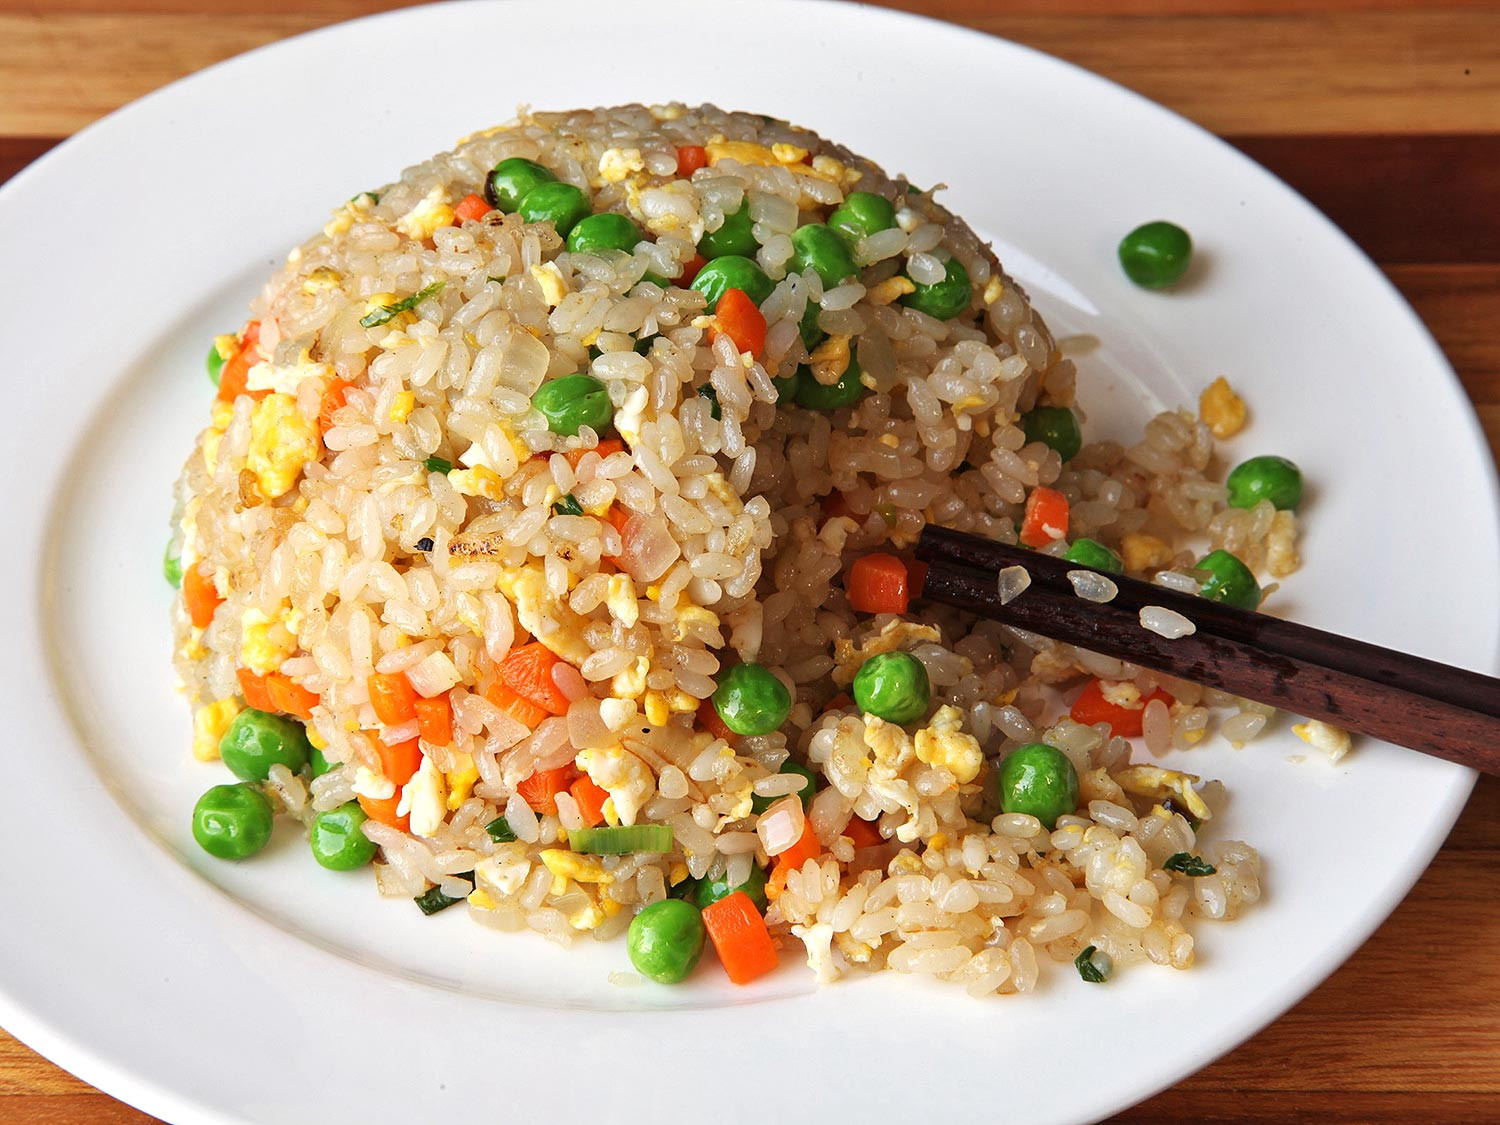 Fried Rice Recipie  The Food Lab Follow These Rules For the Best Fried Rice